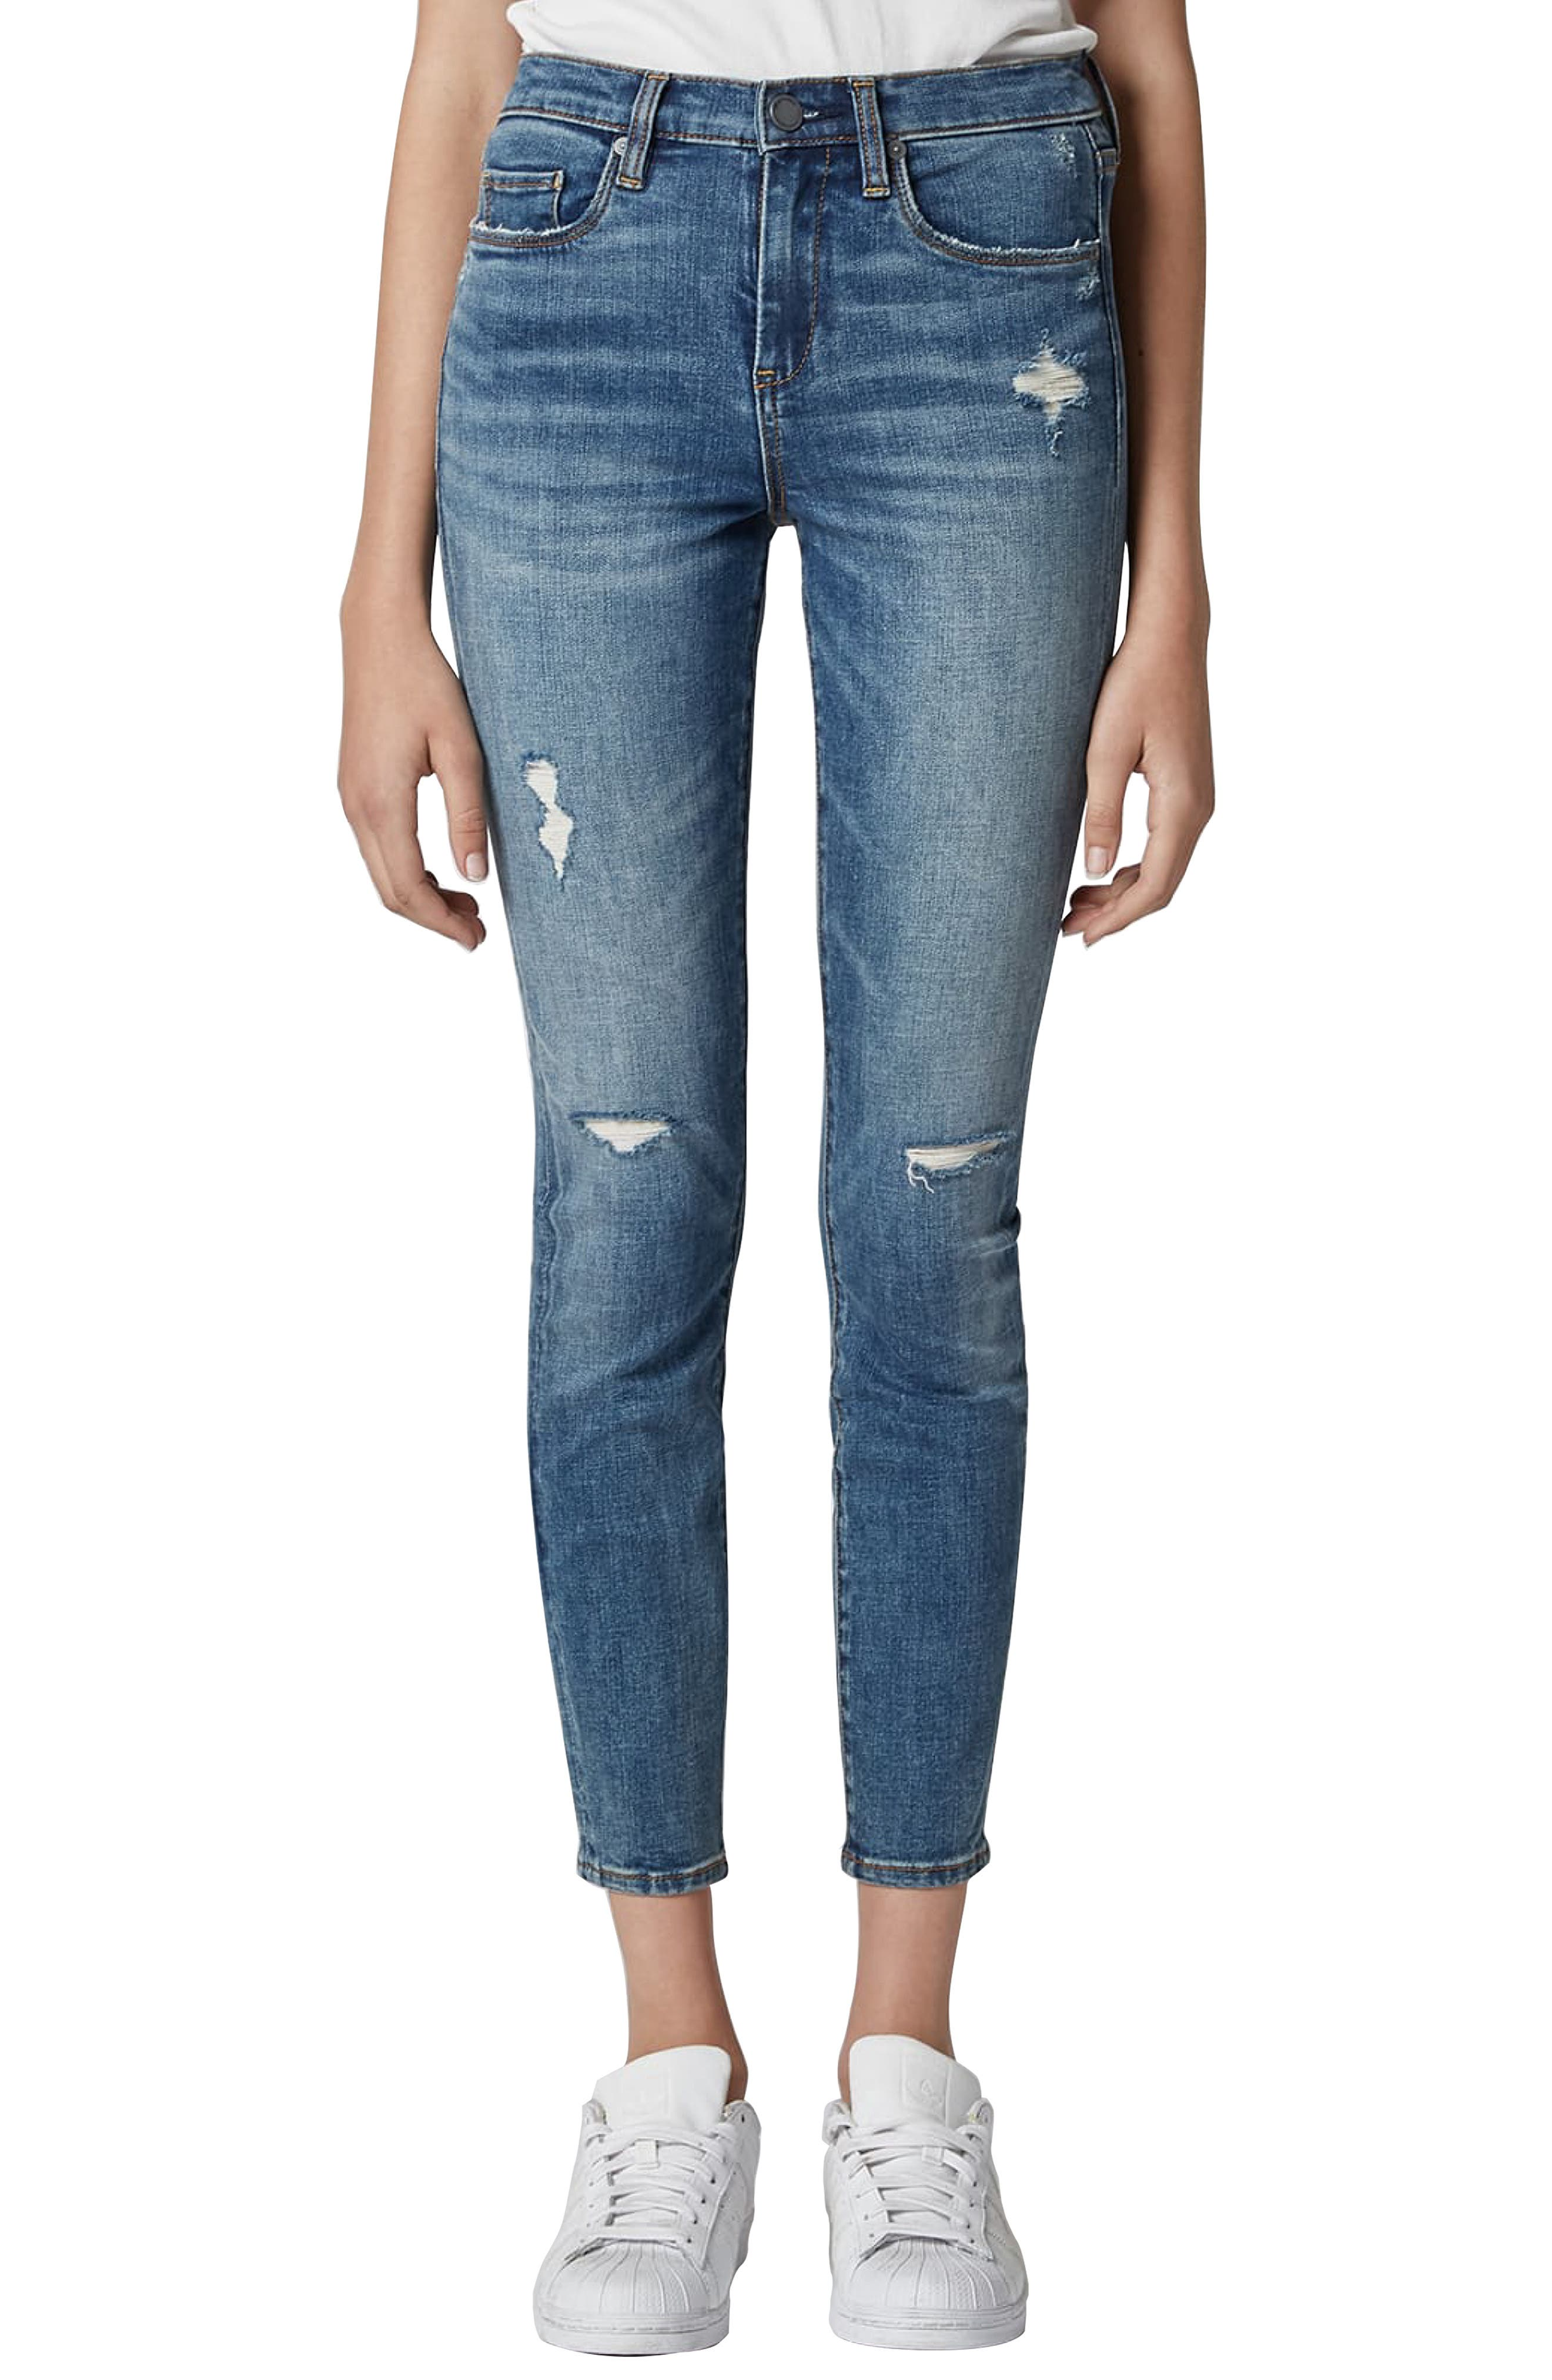 BLANKNYC The Bond Ripped Skinny Jeans, Main, color, JERSEY GIRLS